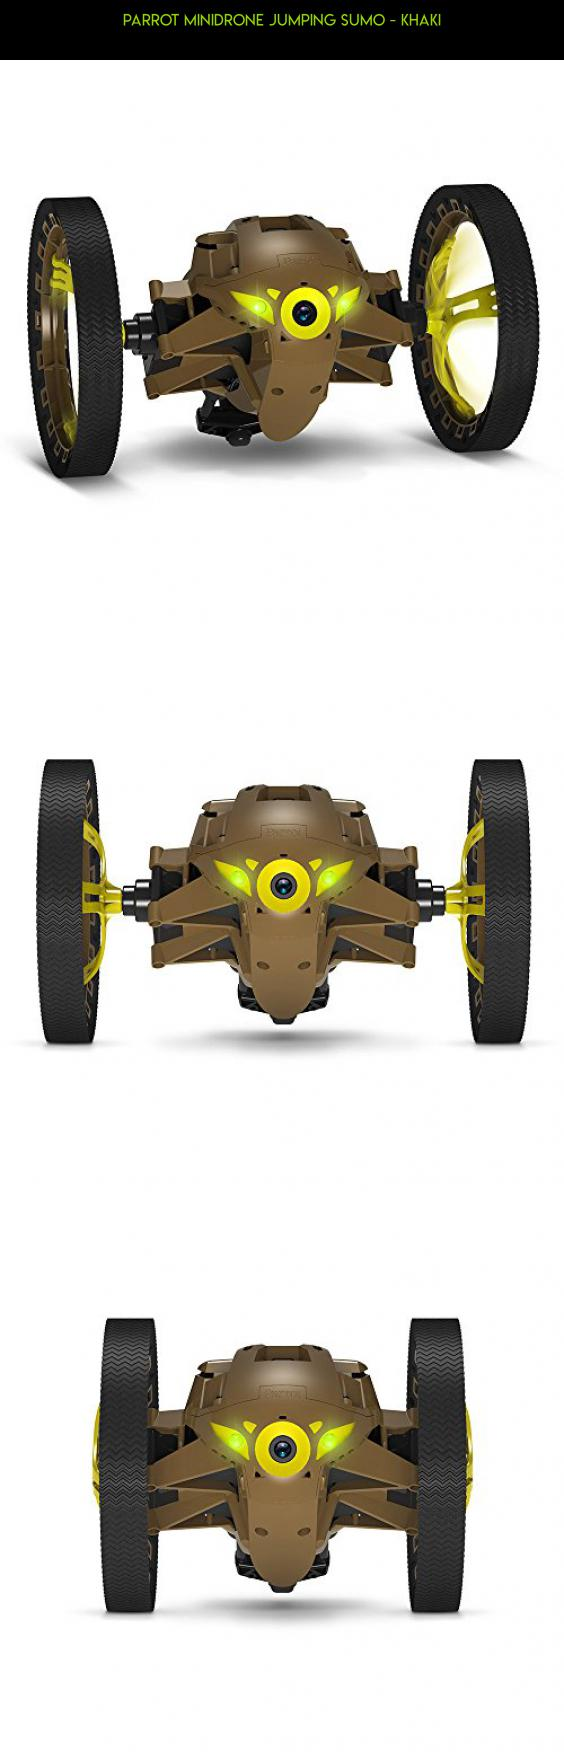 Parrot MiniDrone Jumping Sumo - Khaki #plans #parrot #technology #jumping #drone #products #camera #shopping #kit #drone #racing #tech #gadgets #parts #fpv